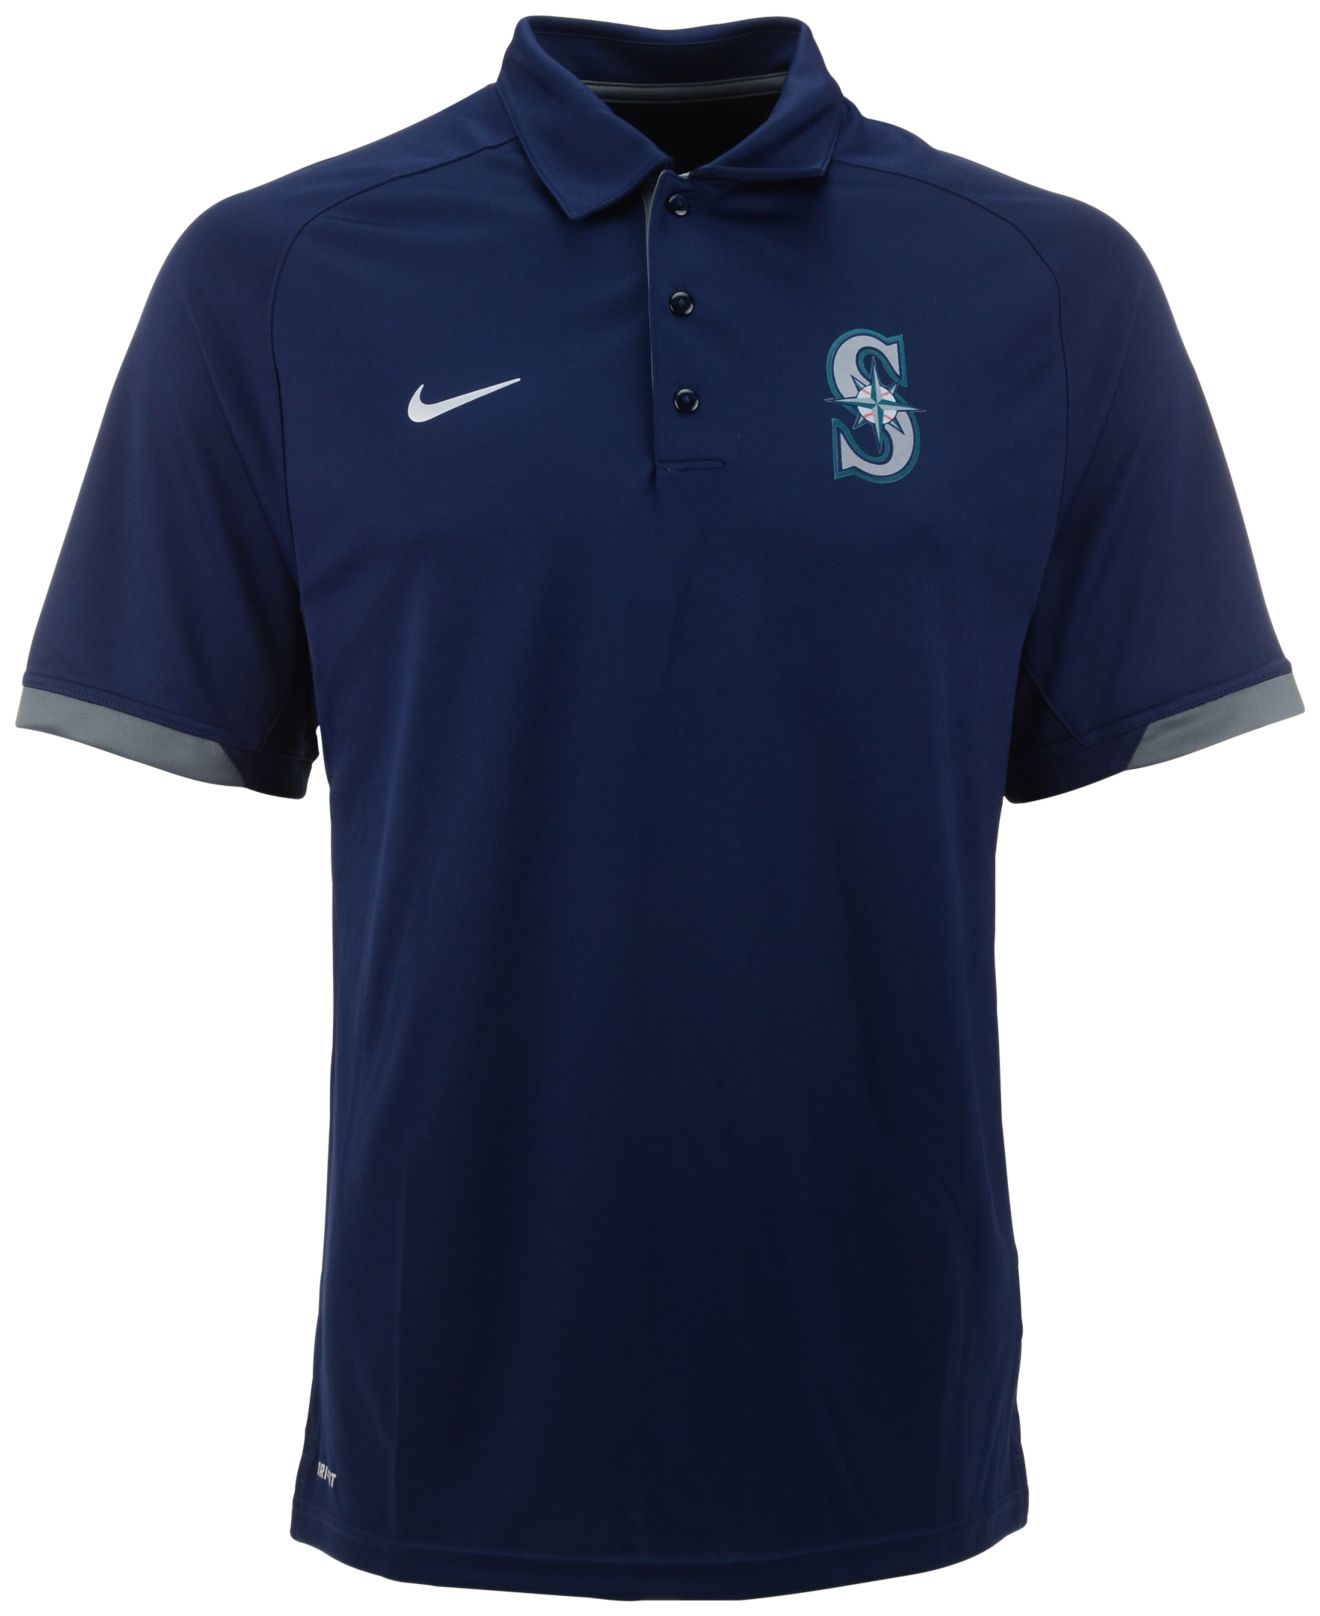 Lyst - Nike Men'S Seattle Mariners Dri-Fit Training Polo ...